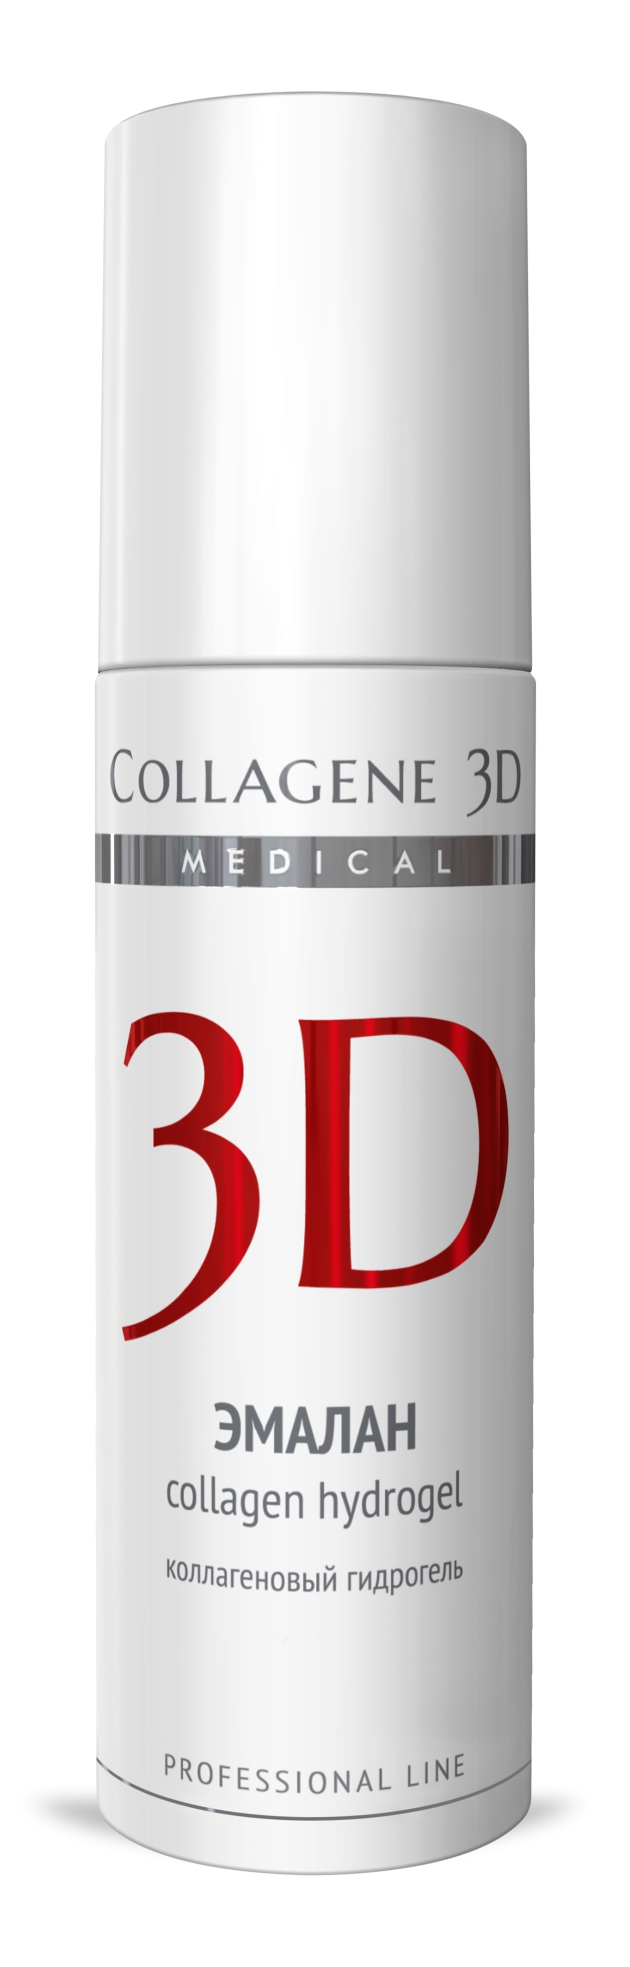 "MEDICAL COLLAGENE 3D ��������� ������������ � �����������, ���������� ""������"" 130�� ����."